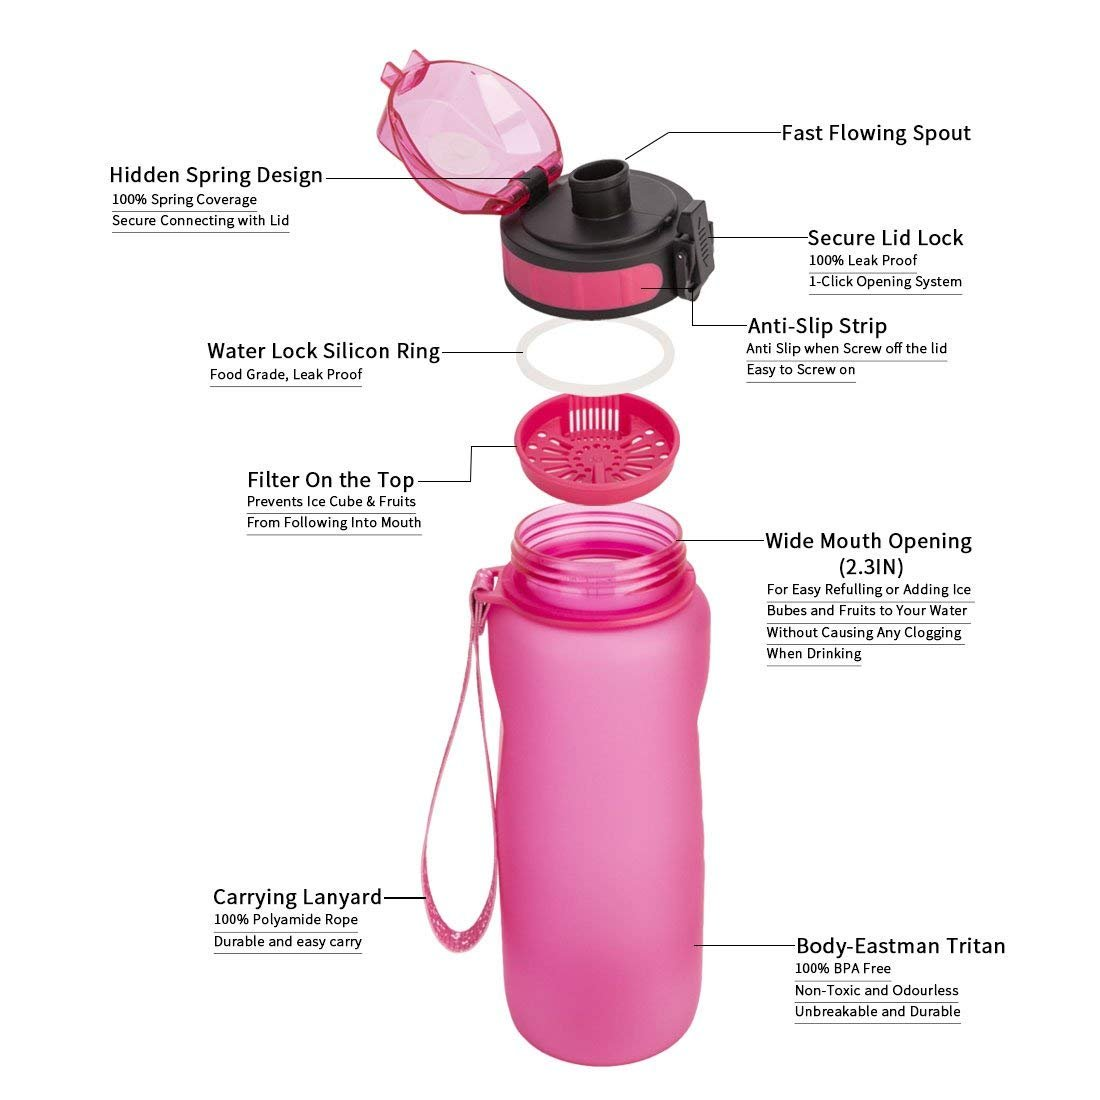 Chiffony Sports Water Bottle-27oz (800ML) Portable BPA-Free Plastic Lightweight Drinking Cup,Flip Top Lid,Eastman Tritan,Leak-Proof(Pink) by Chiffony (Image #3)